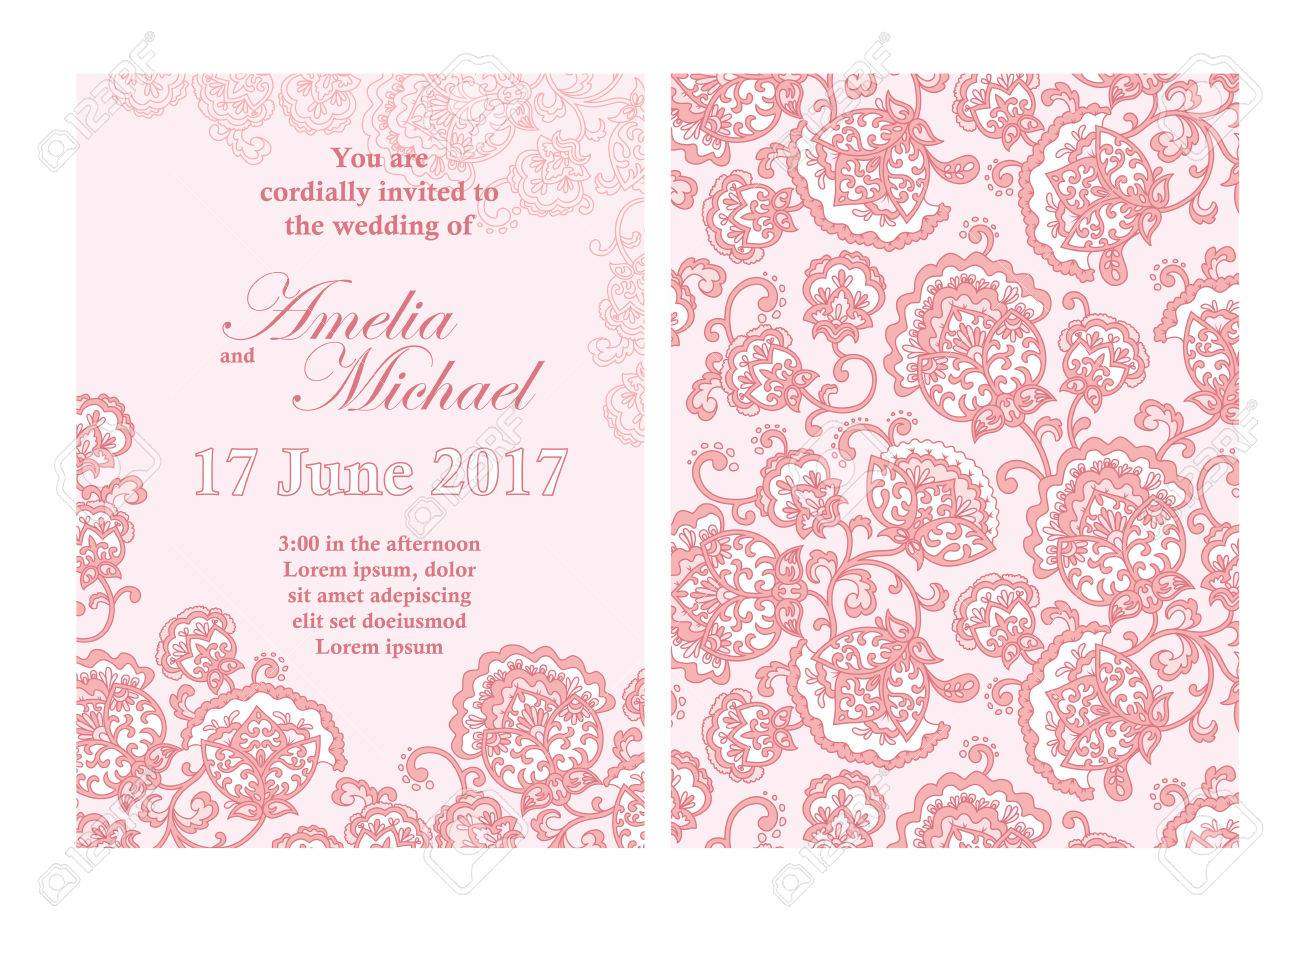 Elegant wedding invitation card template in pink colors flyer banco de imagens elegant wedding invitation card template in pink colors flyer decorated with ornamental flower greeting card with floral pattern stopboris Image collections